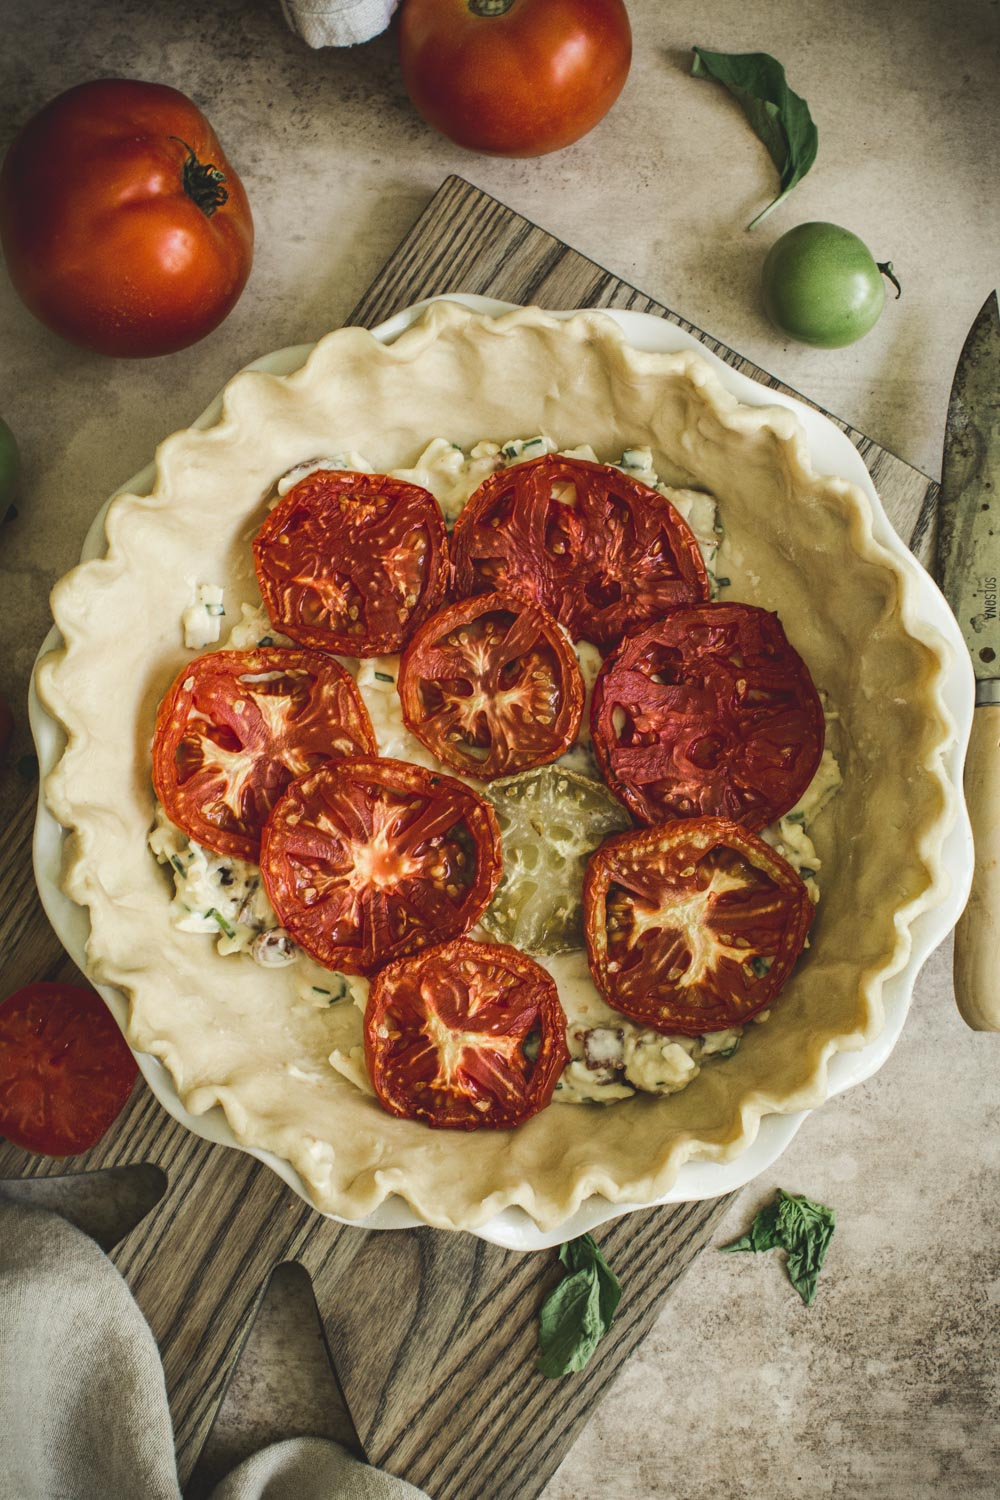 assembling the tomato pie layers